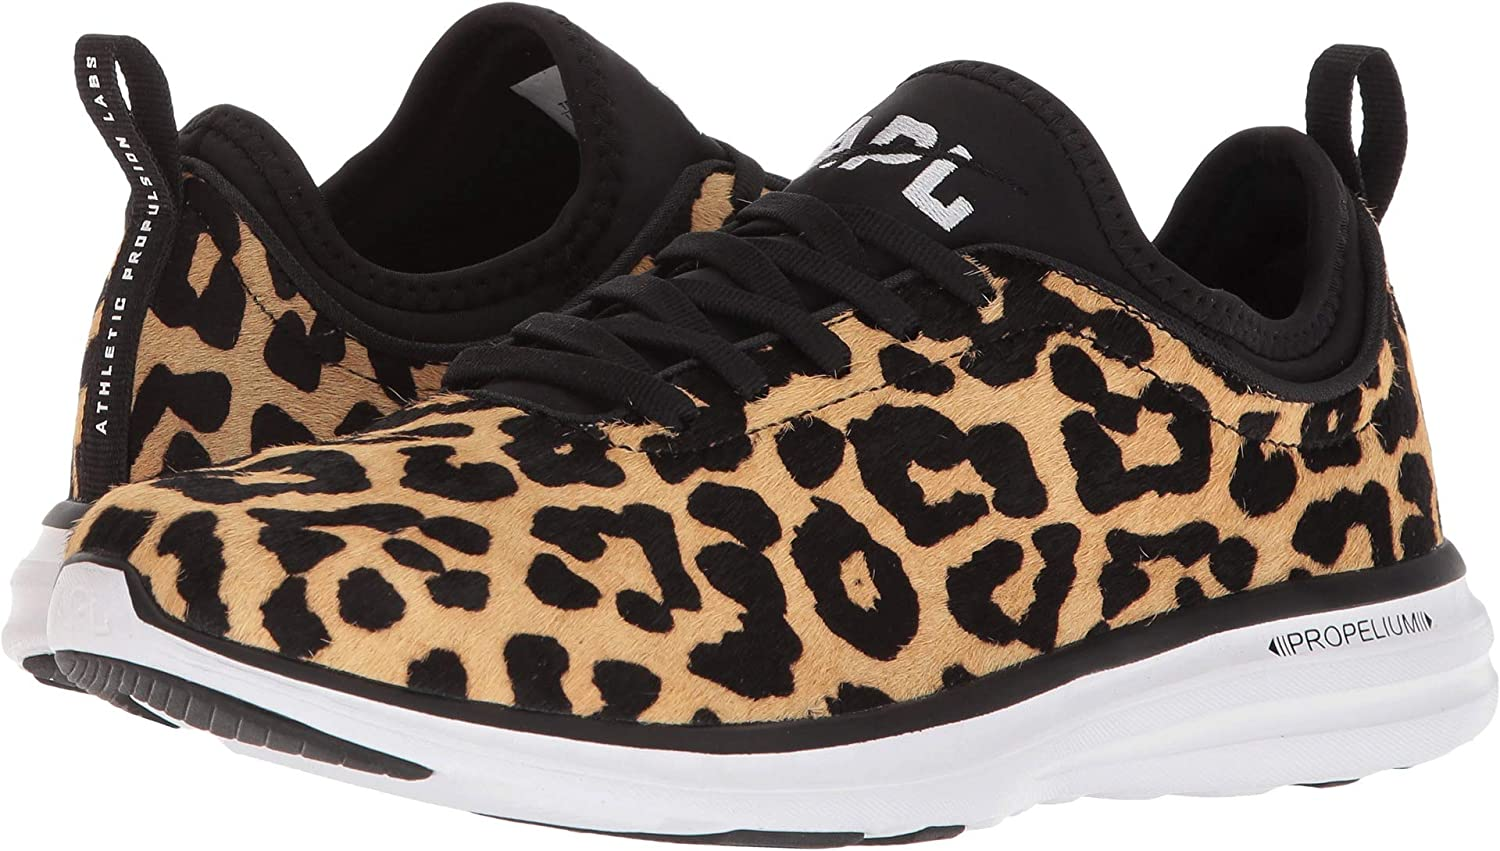 cd43f47656d5 APL: Athletic Propulsion Labs APL Techloom Phantom Haircalf Sneaker (9,  Leopard): Amazon.co.uk: Shoes & Bags